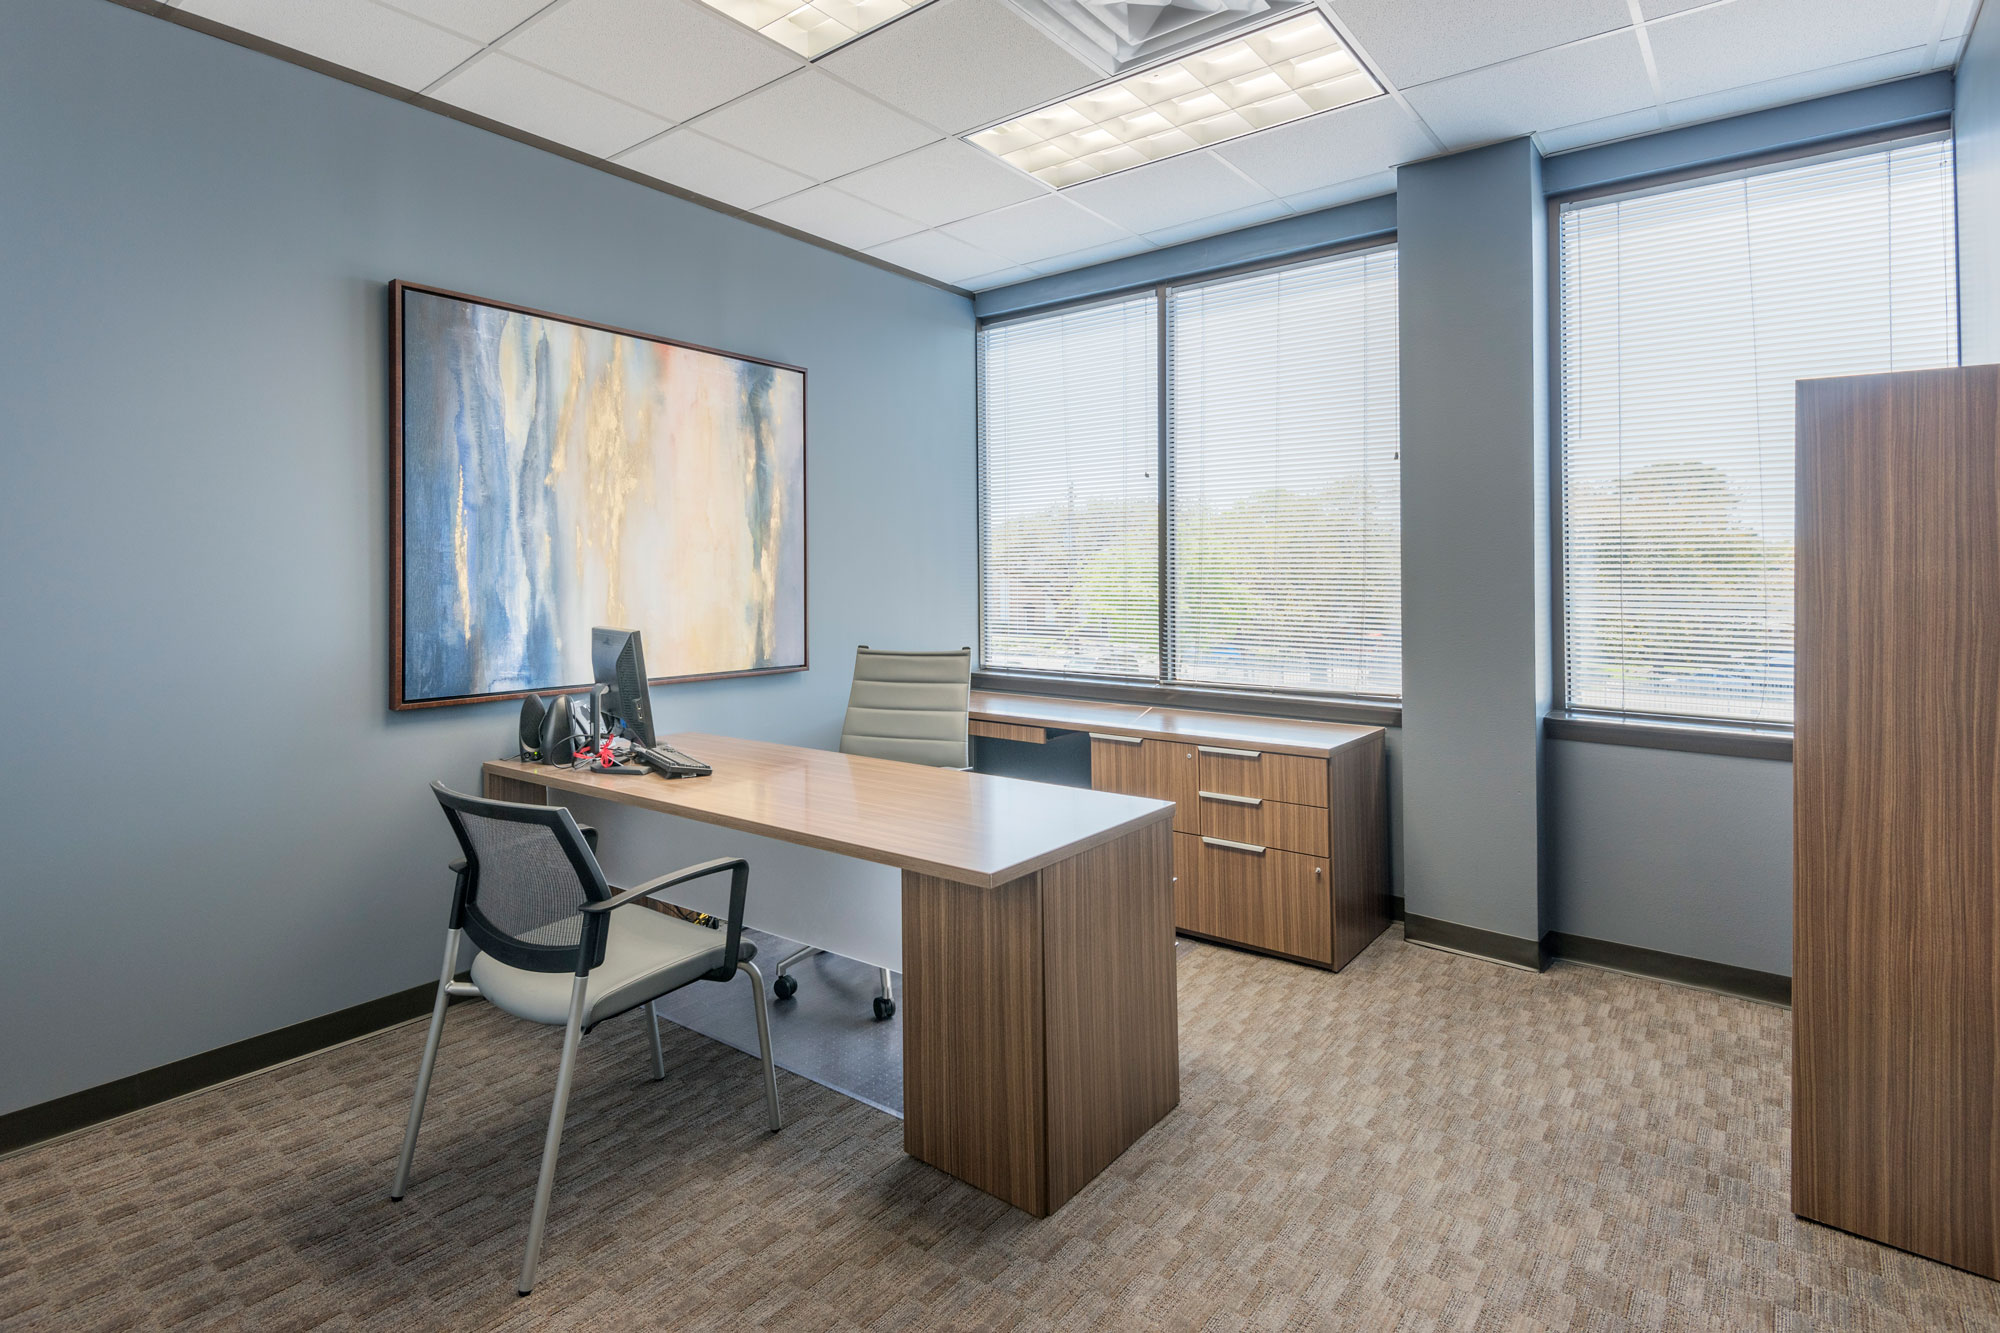 Wogan_Design_Interior_Design_Houston_Law_Office022